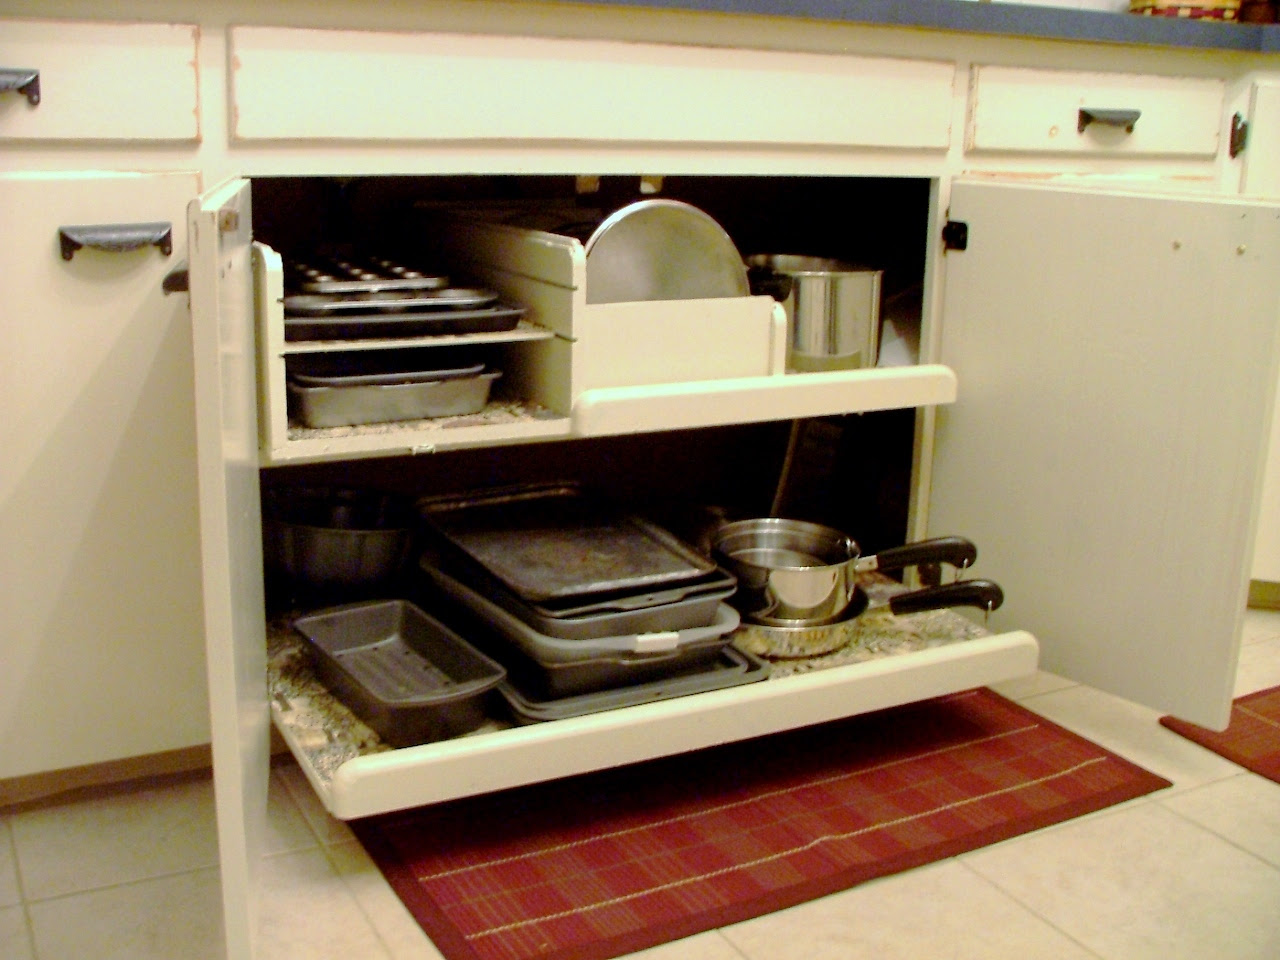 Pull-out Pot and Pan Storage Drawer - Matt and Shari